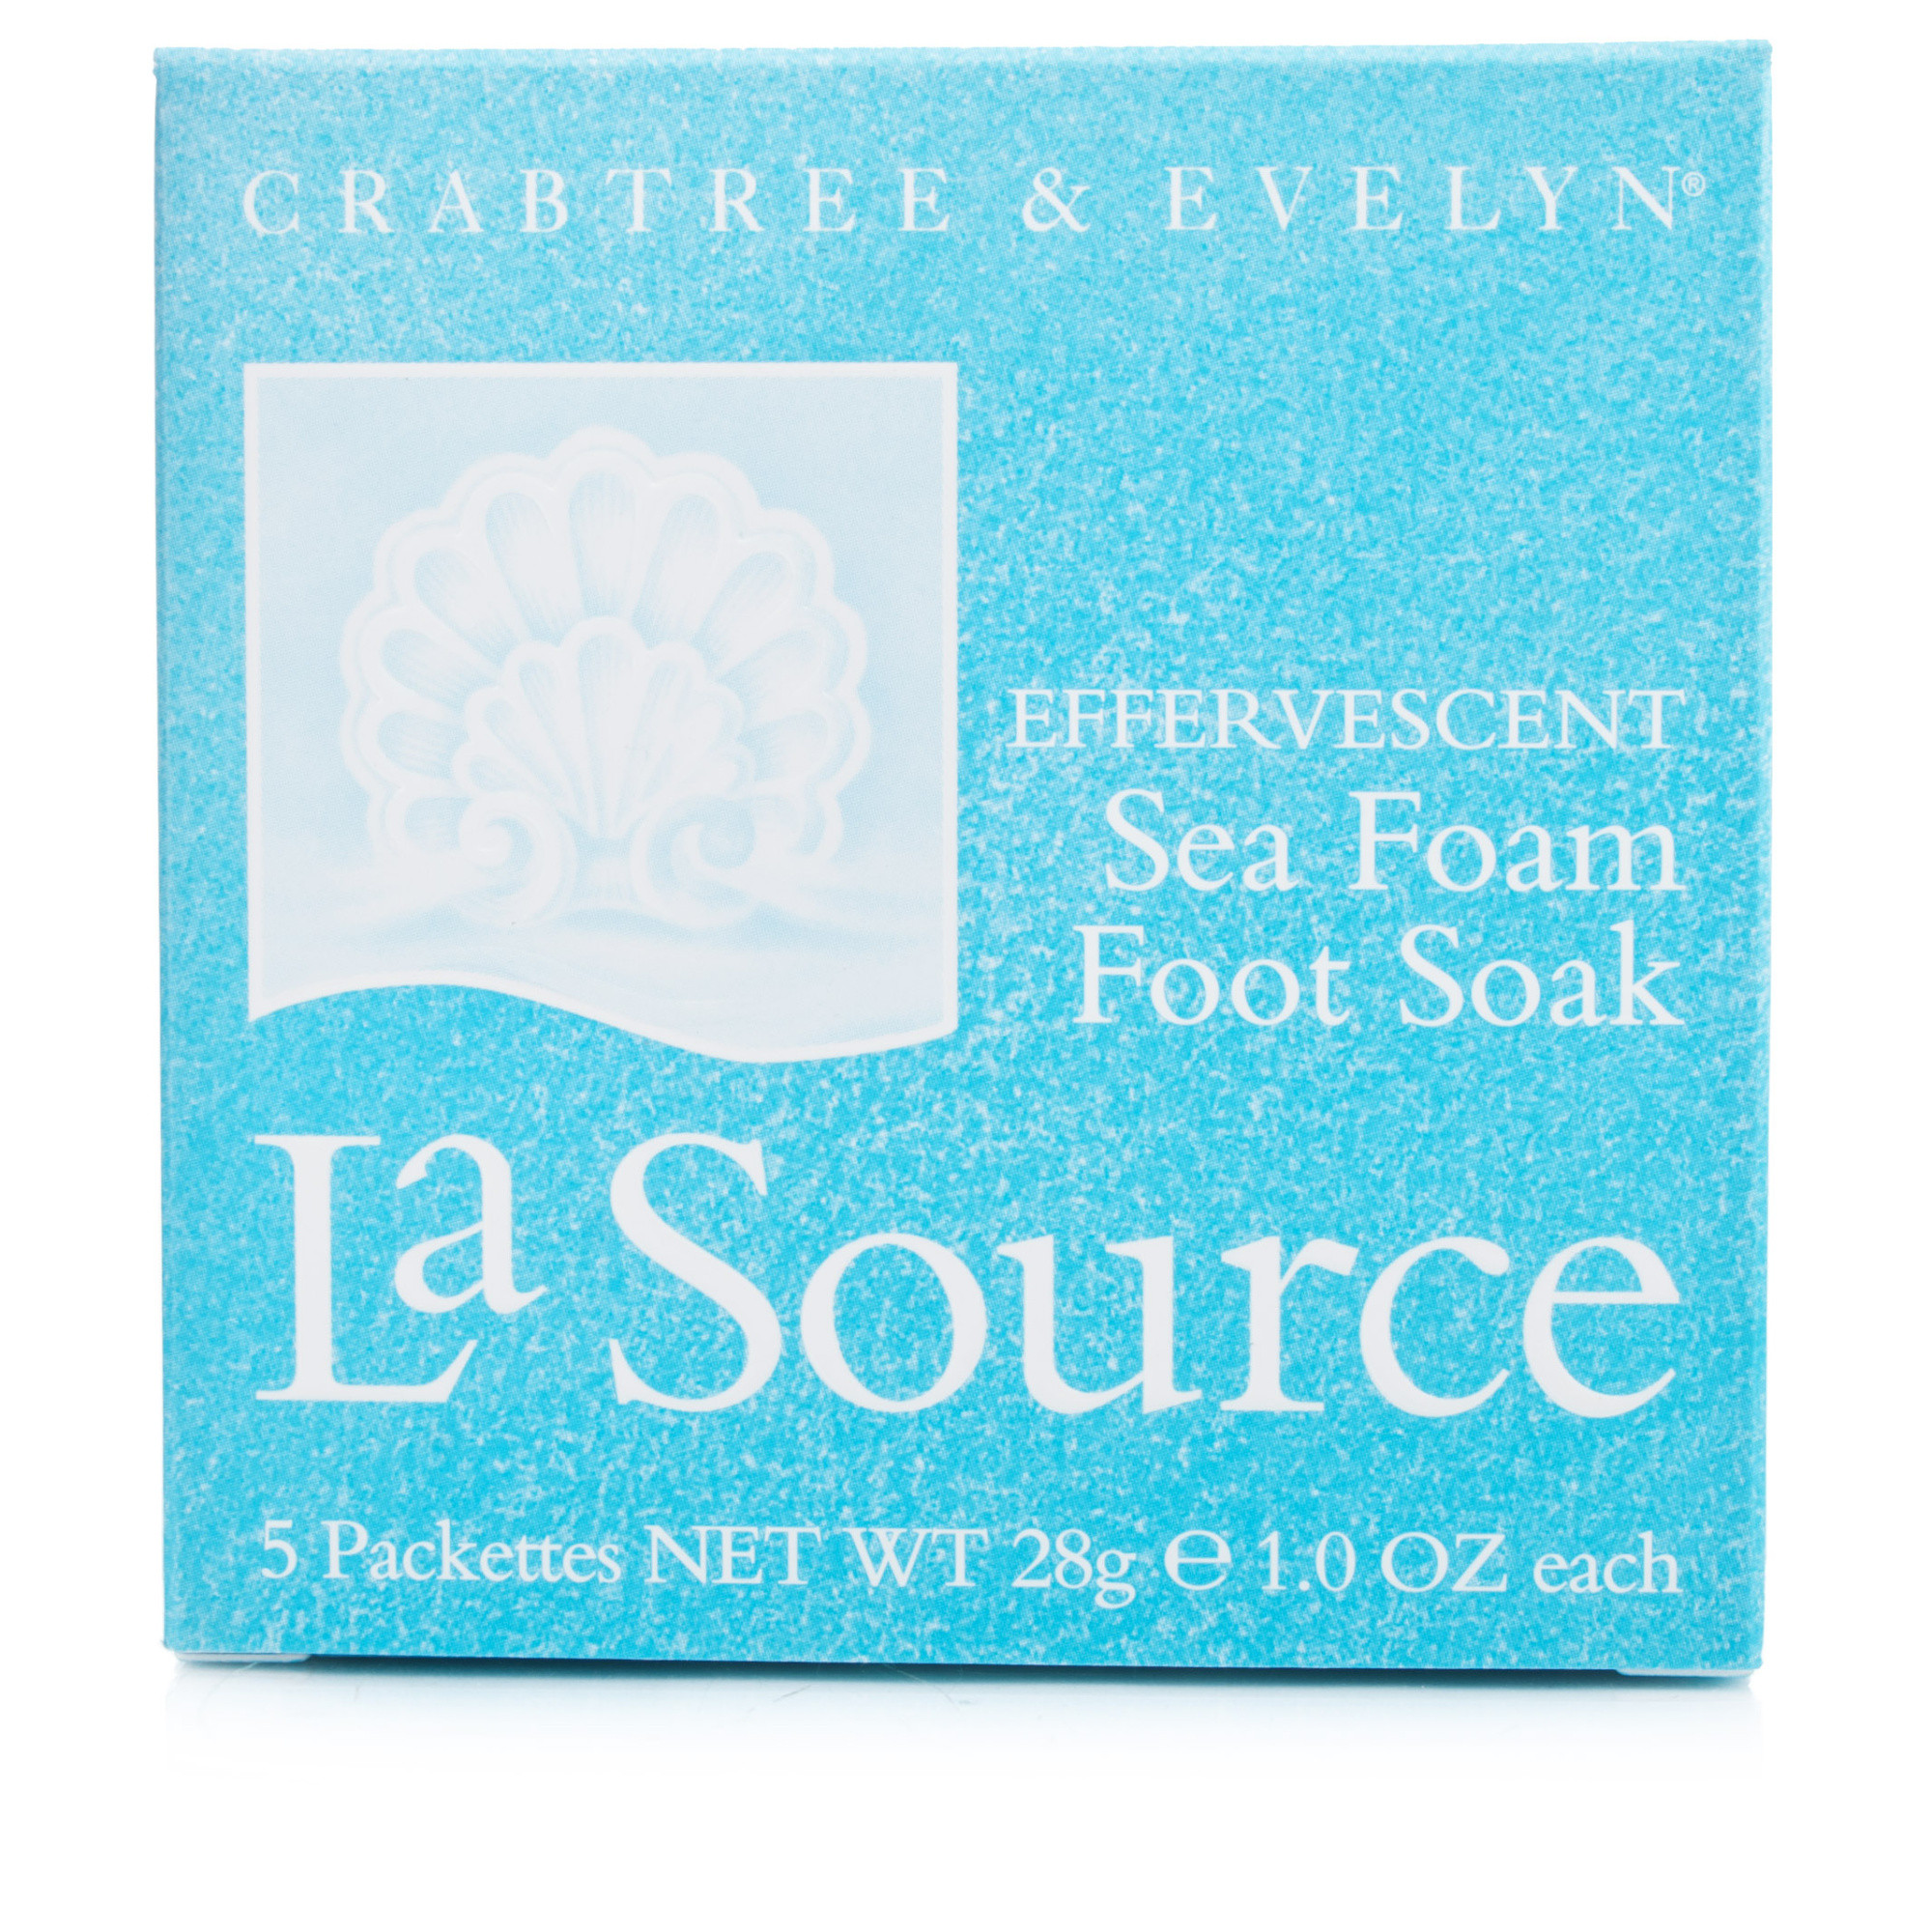 Crabtree & Evelyn La Source Sea Foam Foot Soak